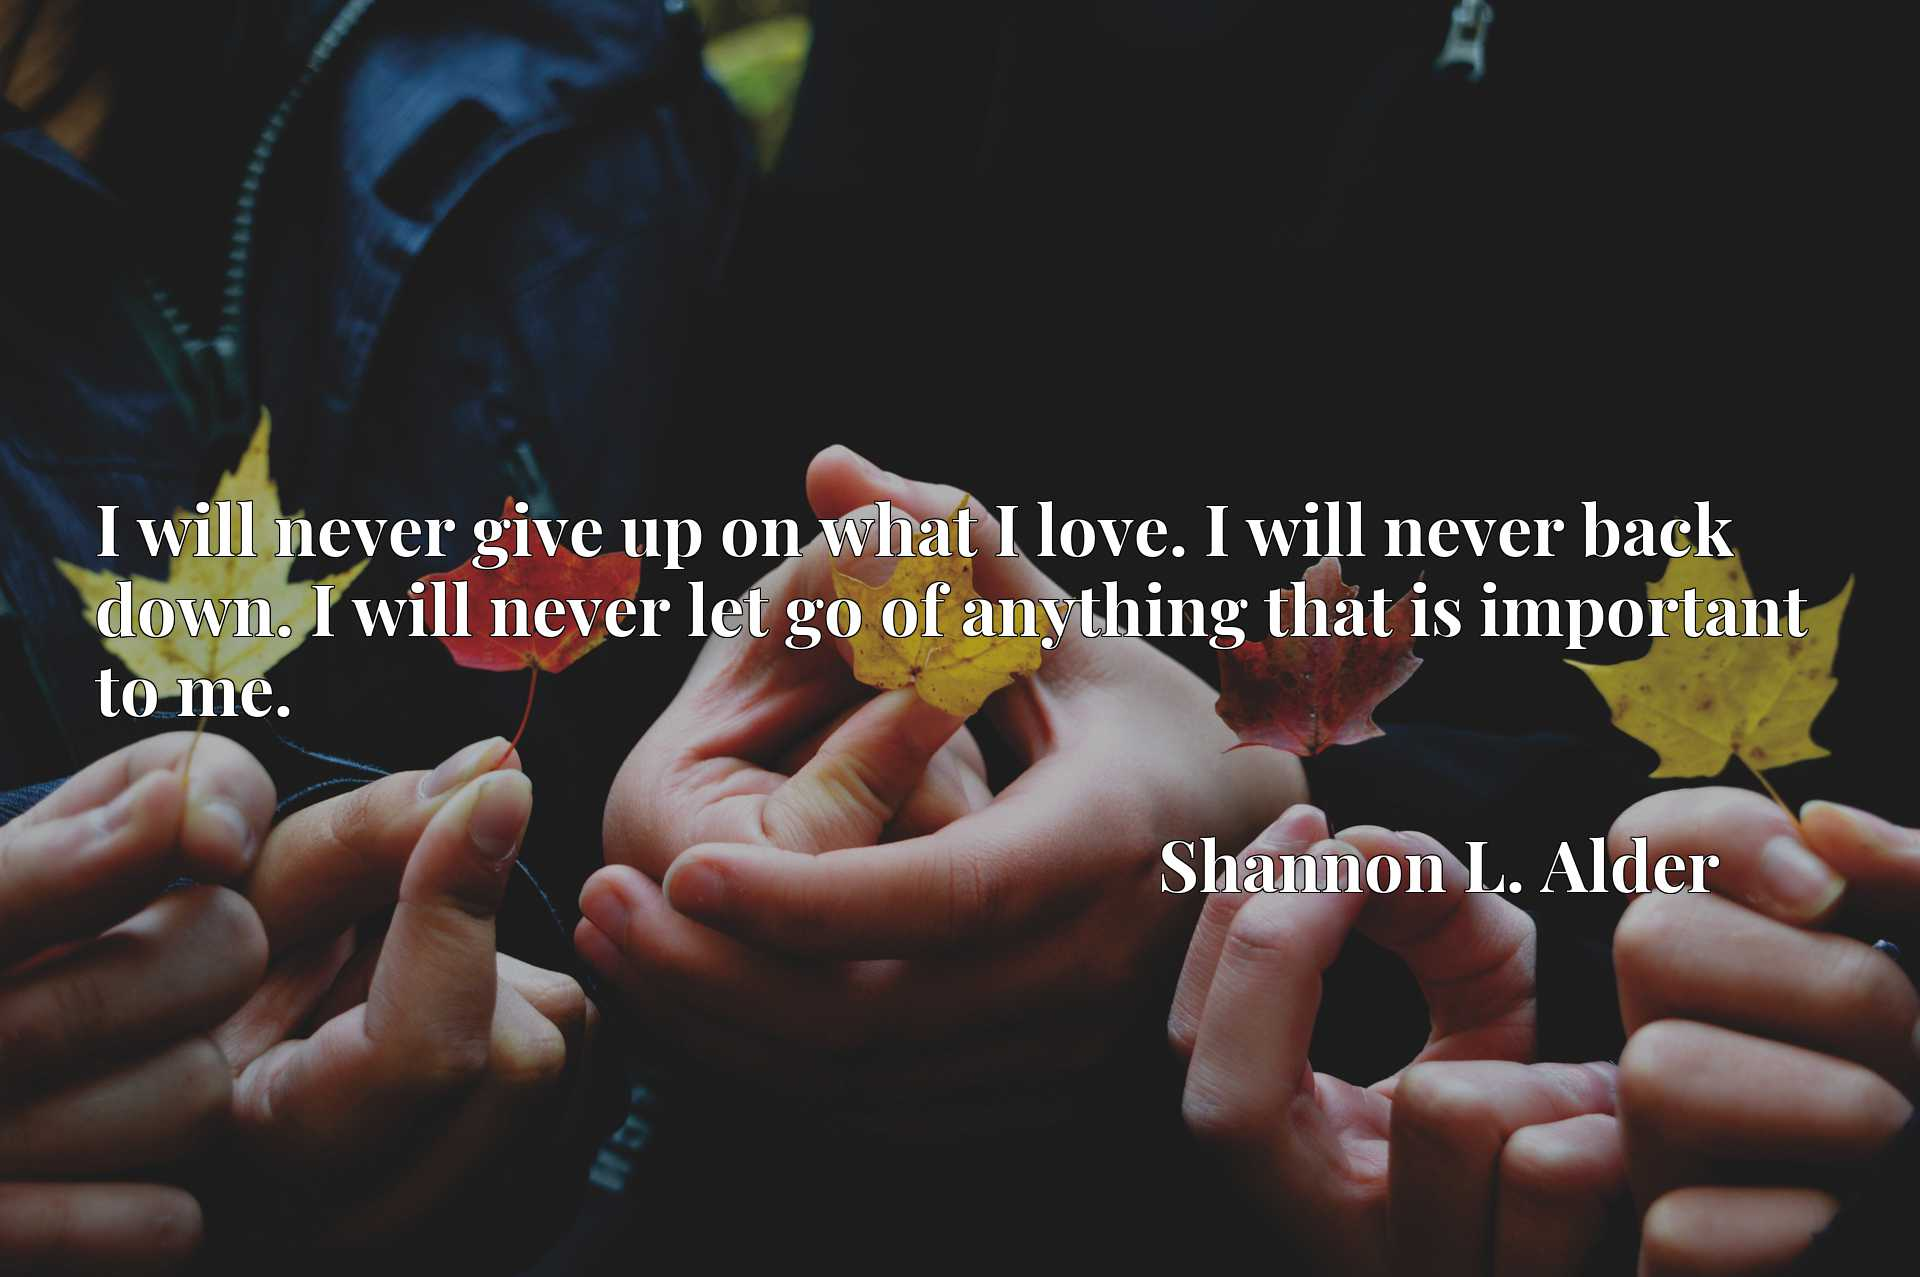 Quote Picture :I will never give up on what I love. I will never back down. I will never let go of anything that is important to me.